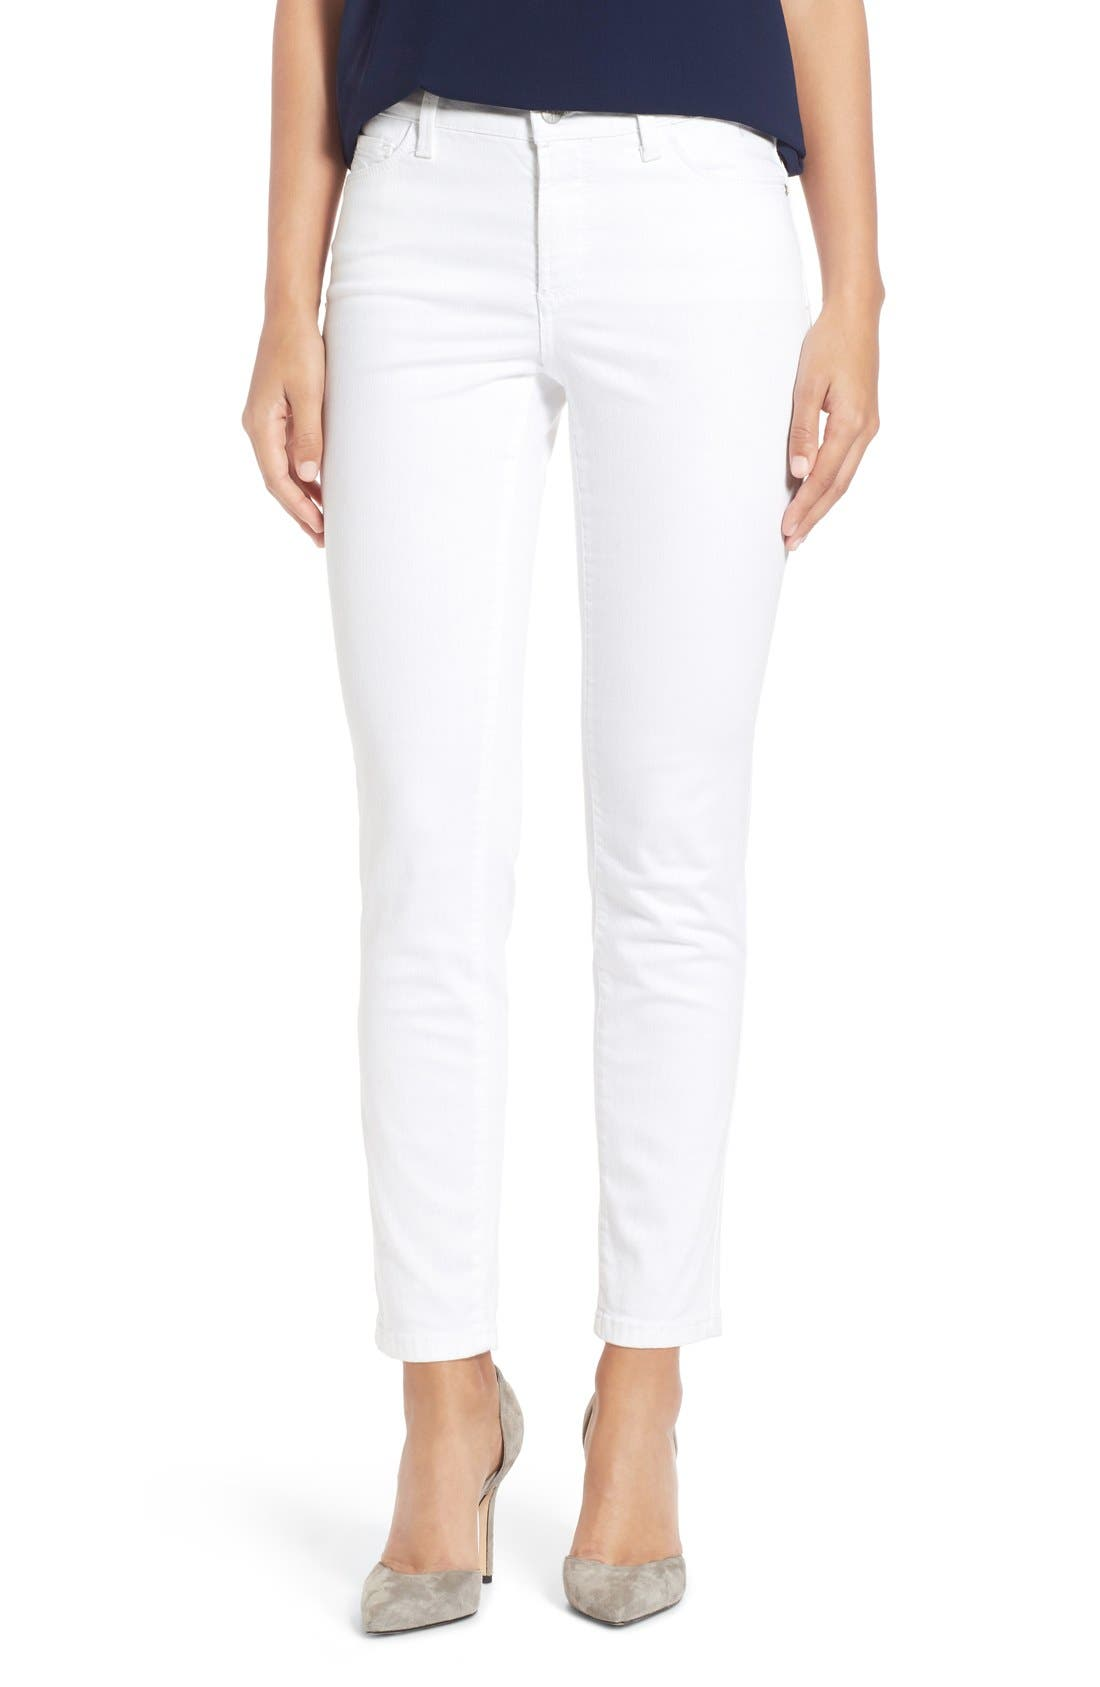 Main Image - NYDJ Alina Colored Stretch Ankle Skinny Jeans (Regular & Petite)